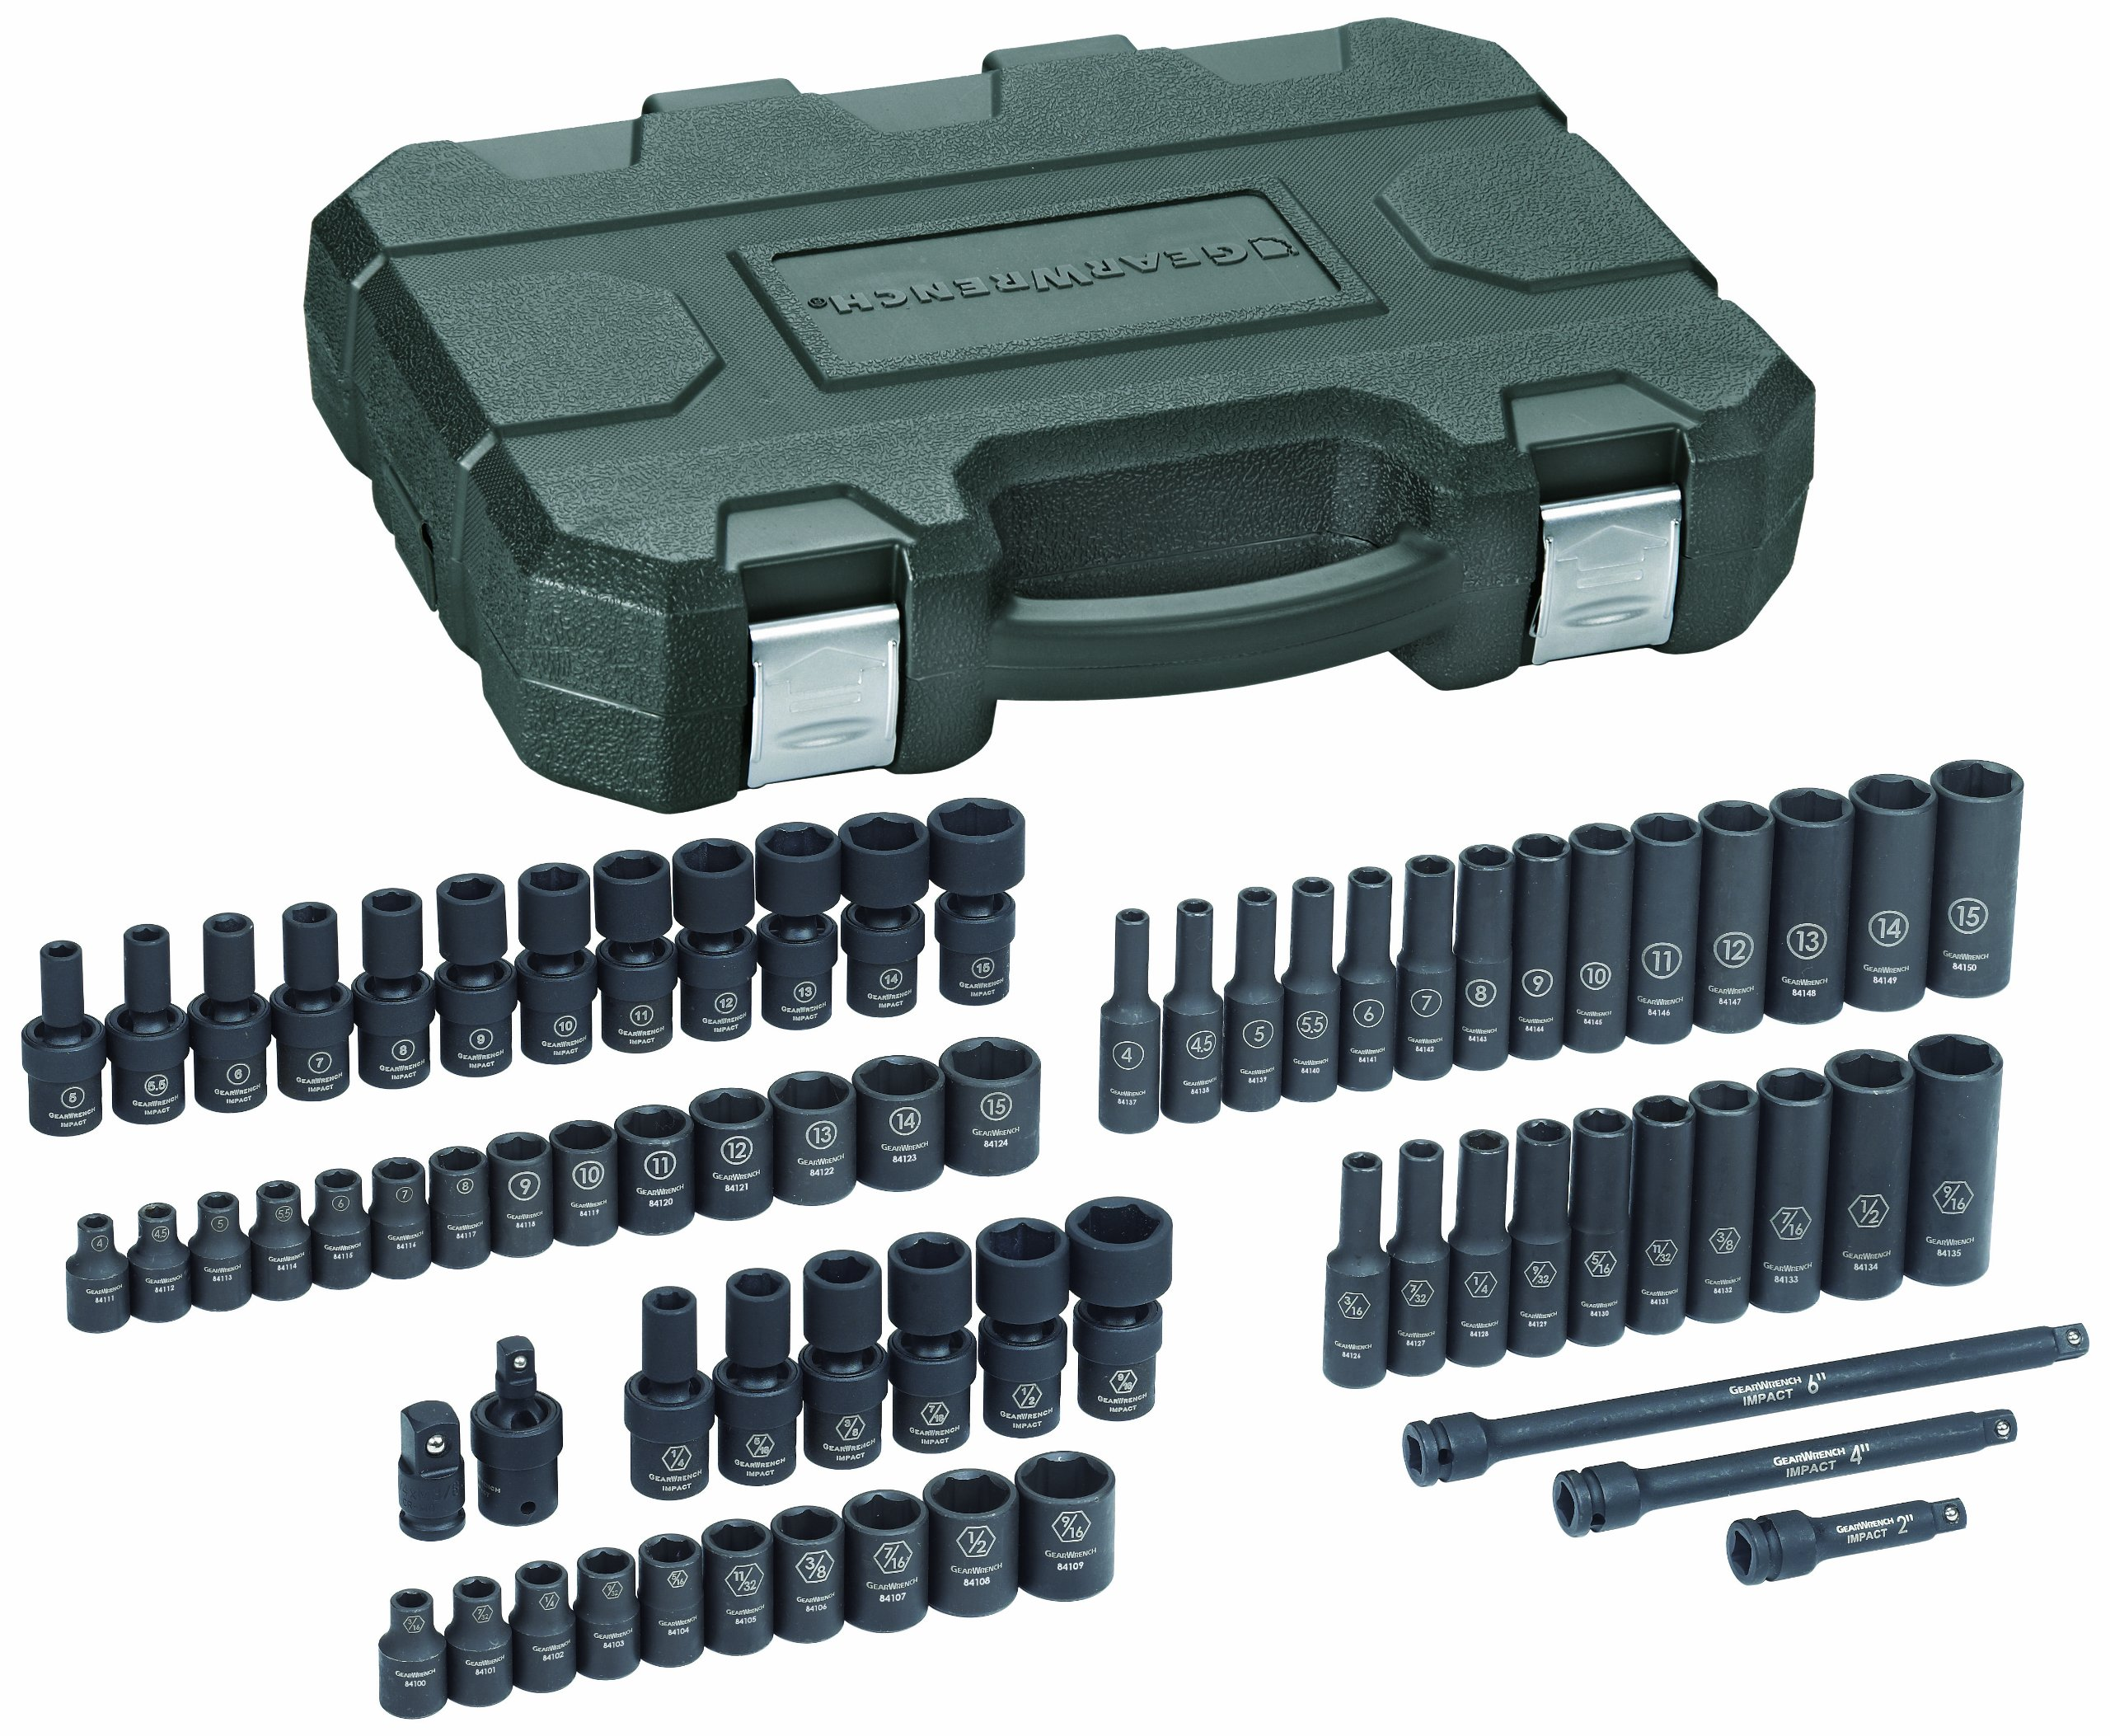 GEARWRENCH 71 Pc. 1/4'' Drive 6 Point Standard & Deep Universal Impact SAE/Metric Socket Set - 84903 by GearWrench